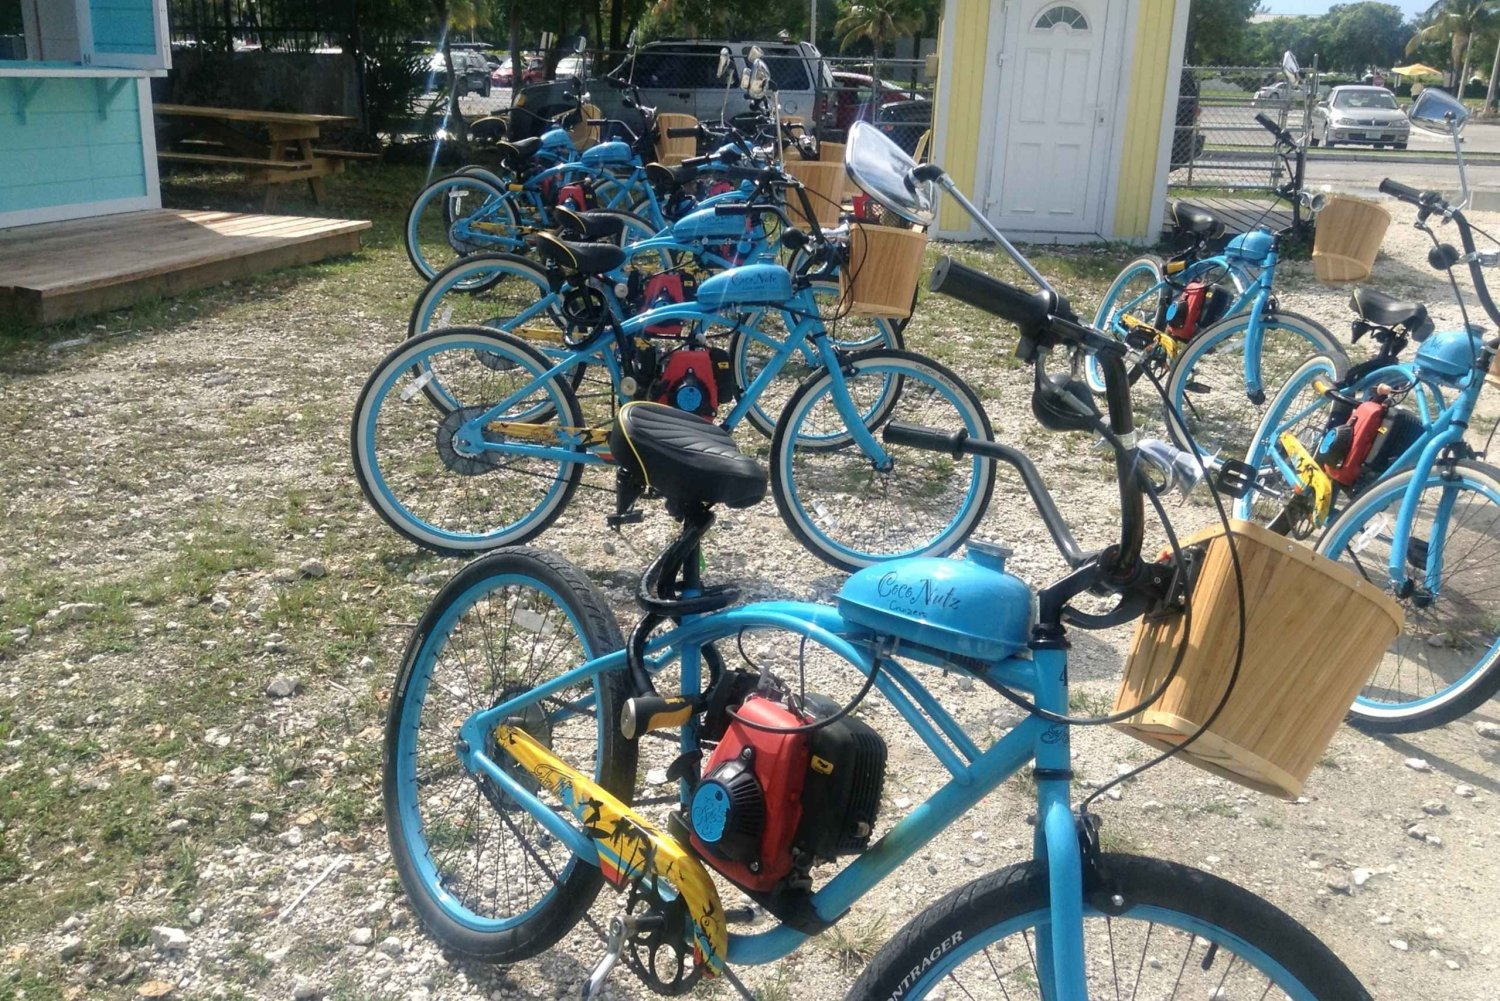 Freeport: Half-Day Motorized Bicycle Tour